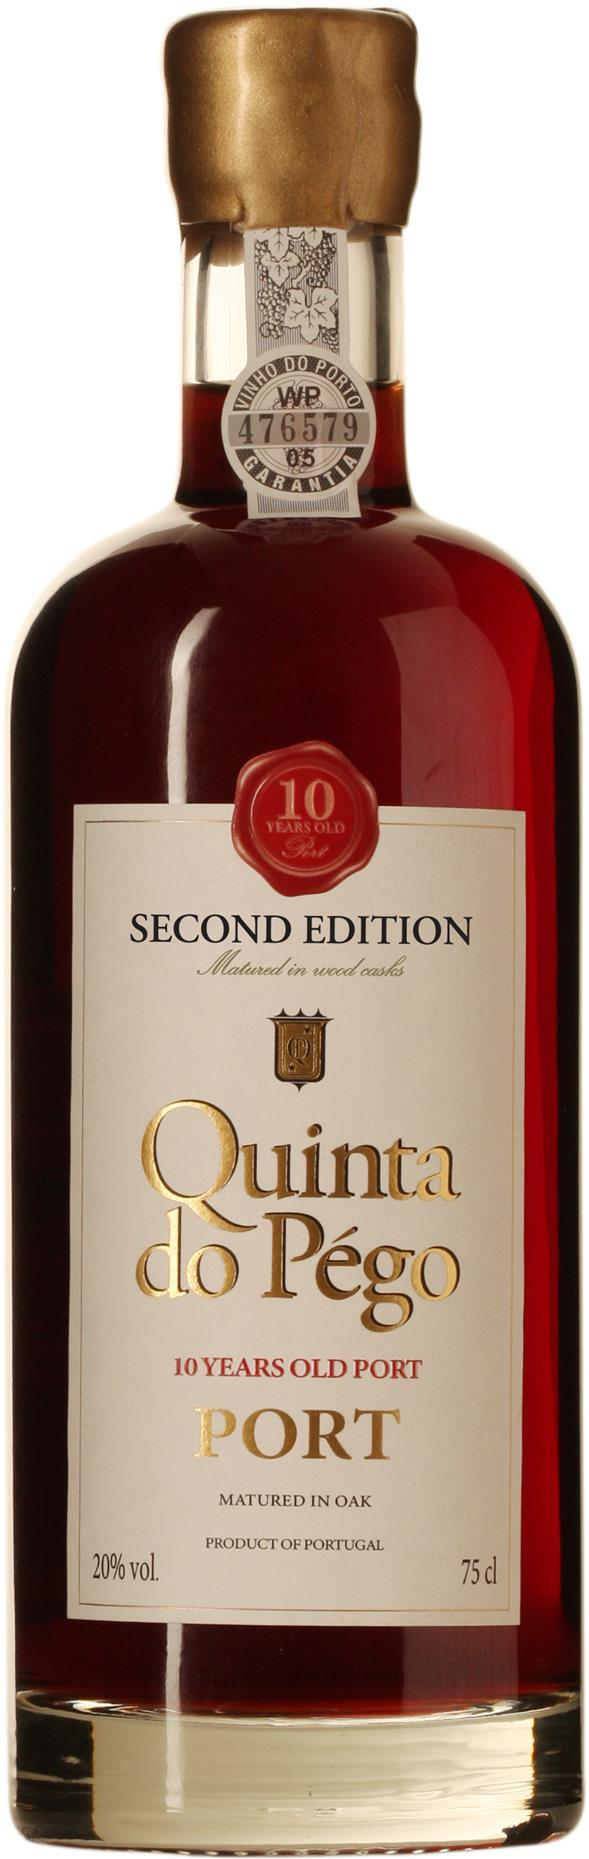 Quinta do Pégo 10 Years old port Second edition